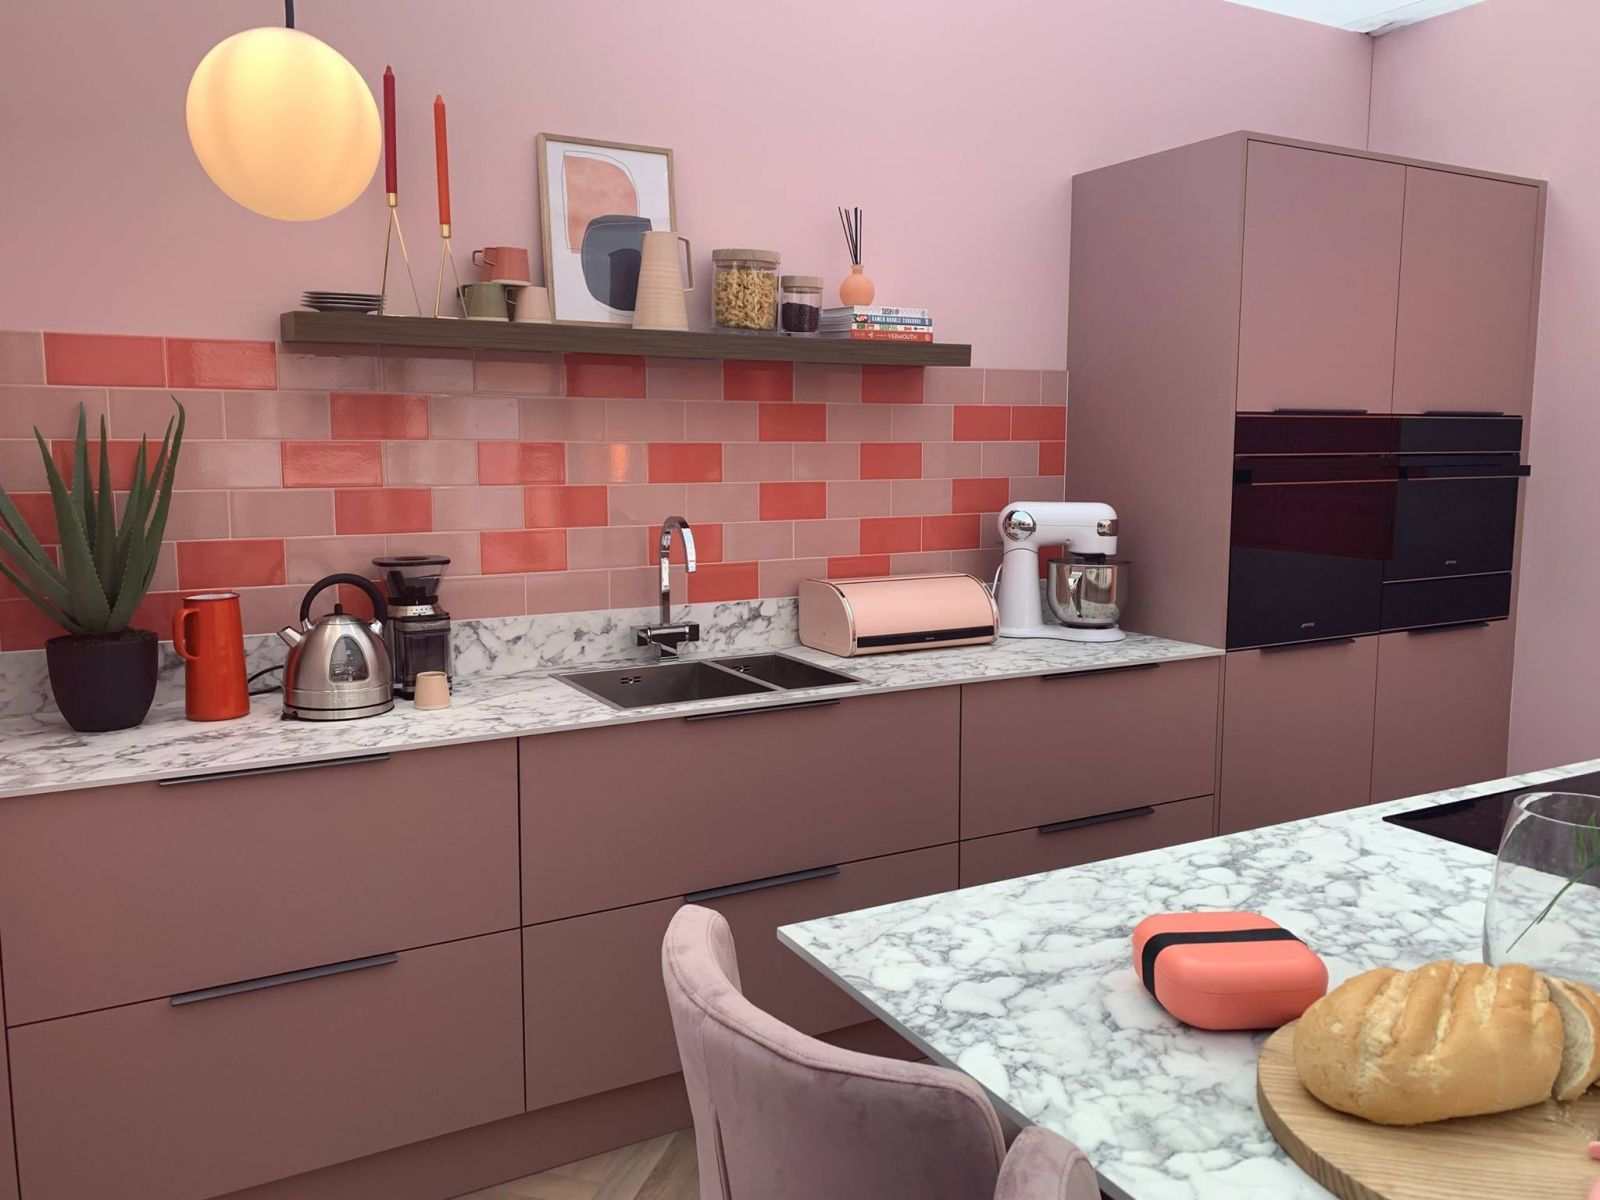 Masterclass Kitchens Ideal Home Show Modern Pink Kitchen Design with Marble Worktops